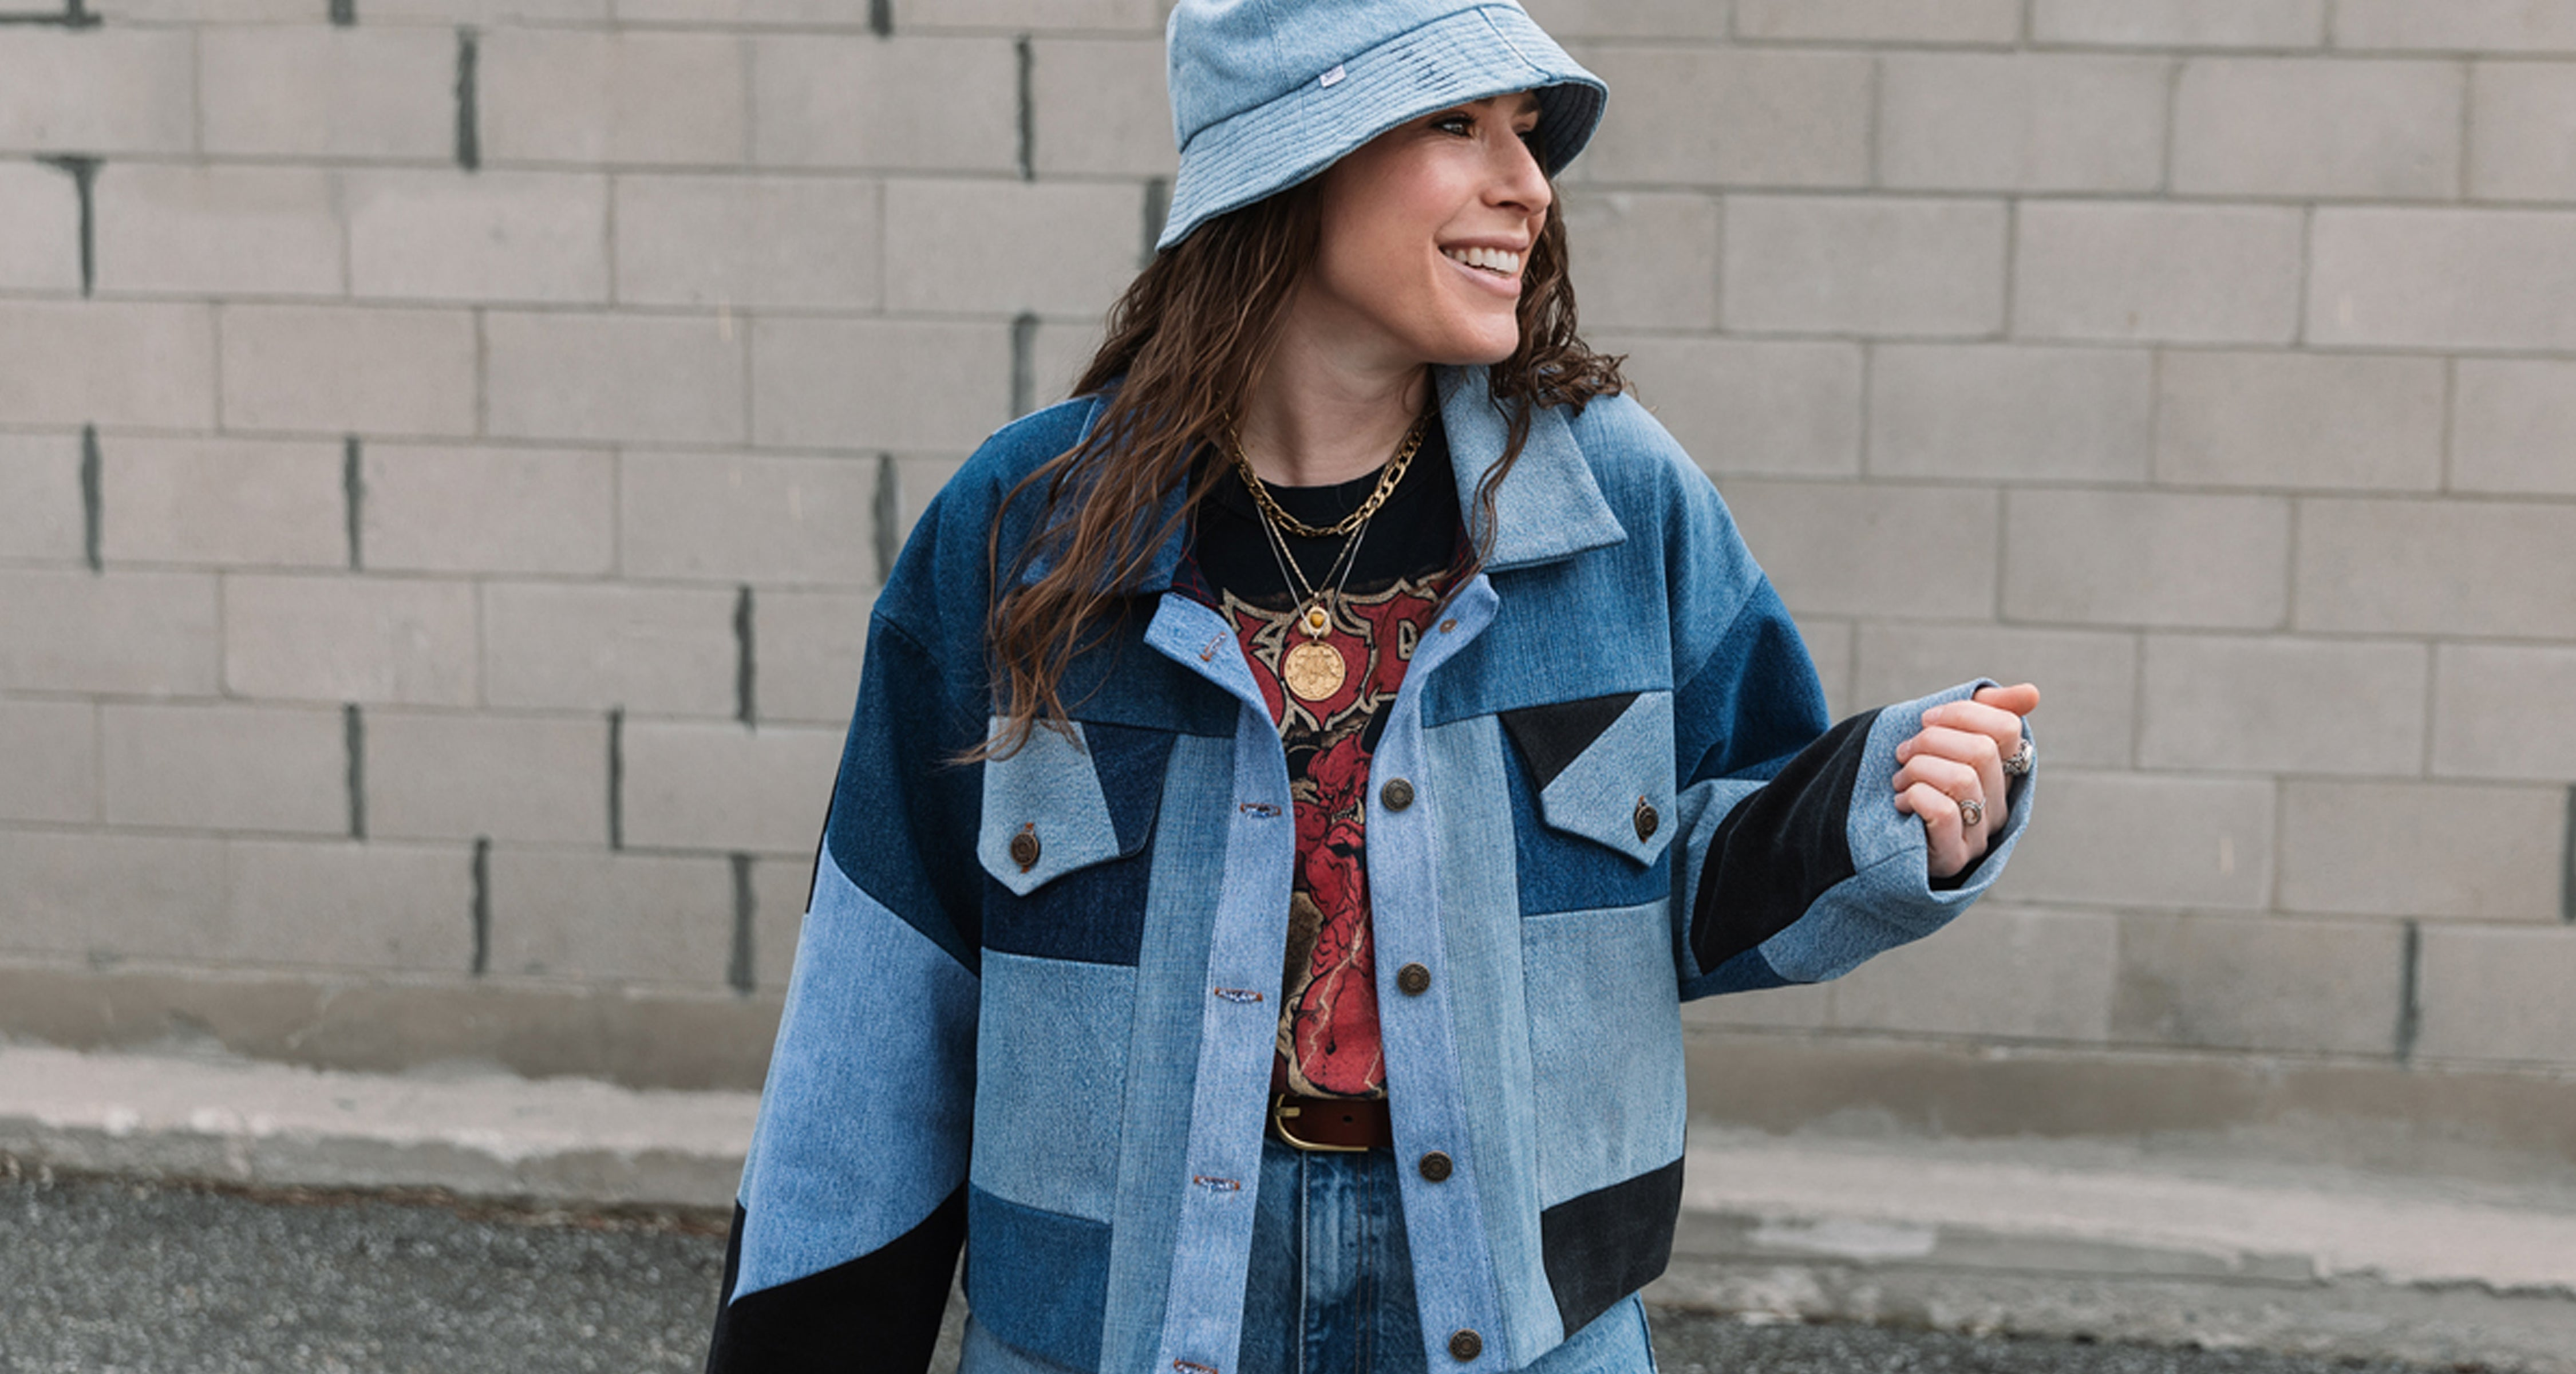 upcycled patchwork denim jacket, reworked jeans